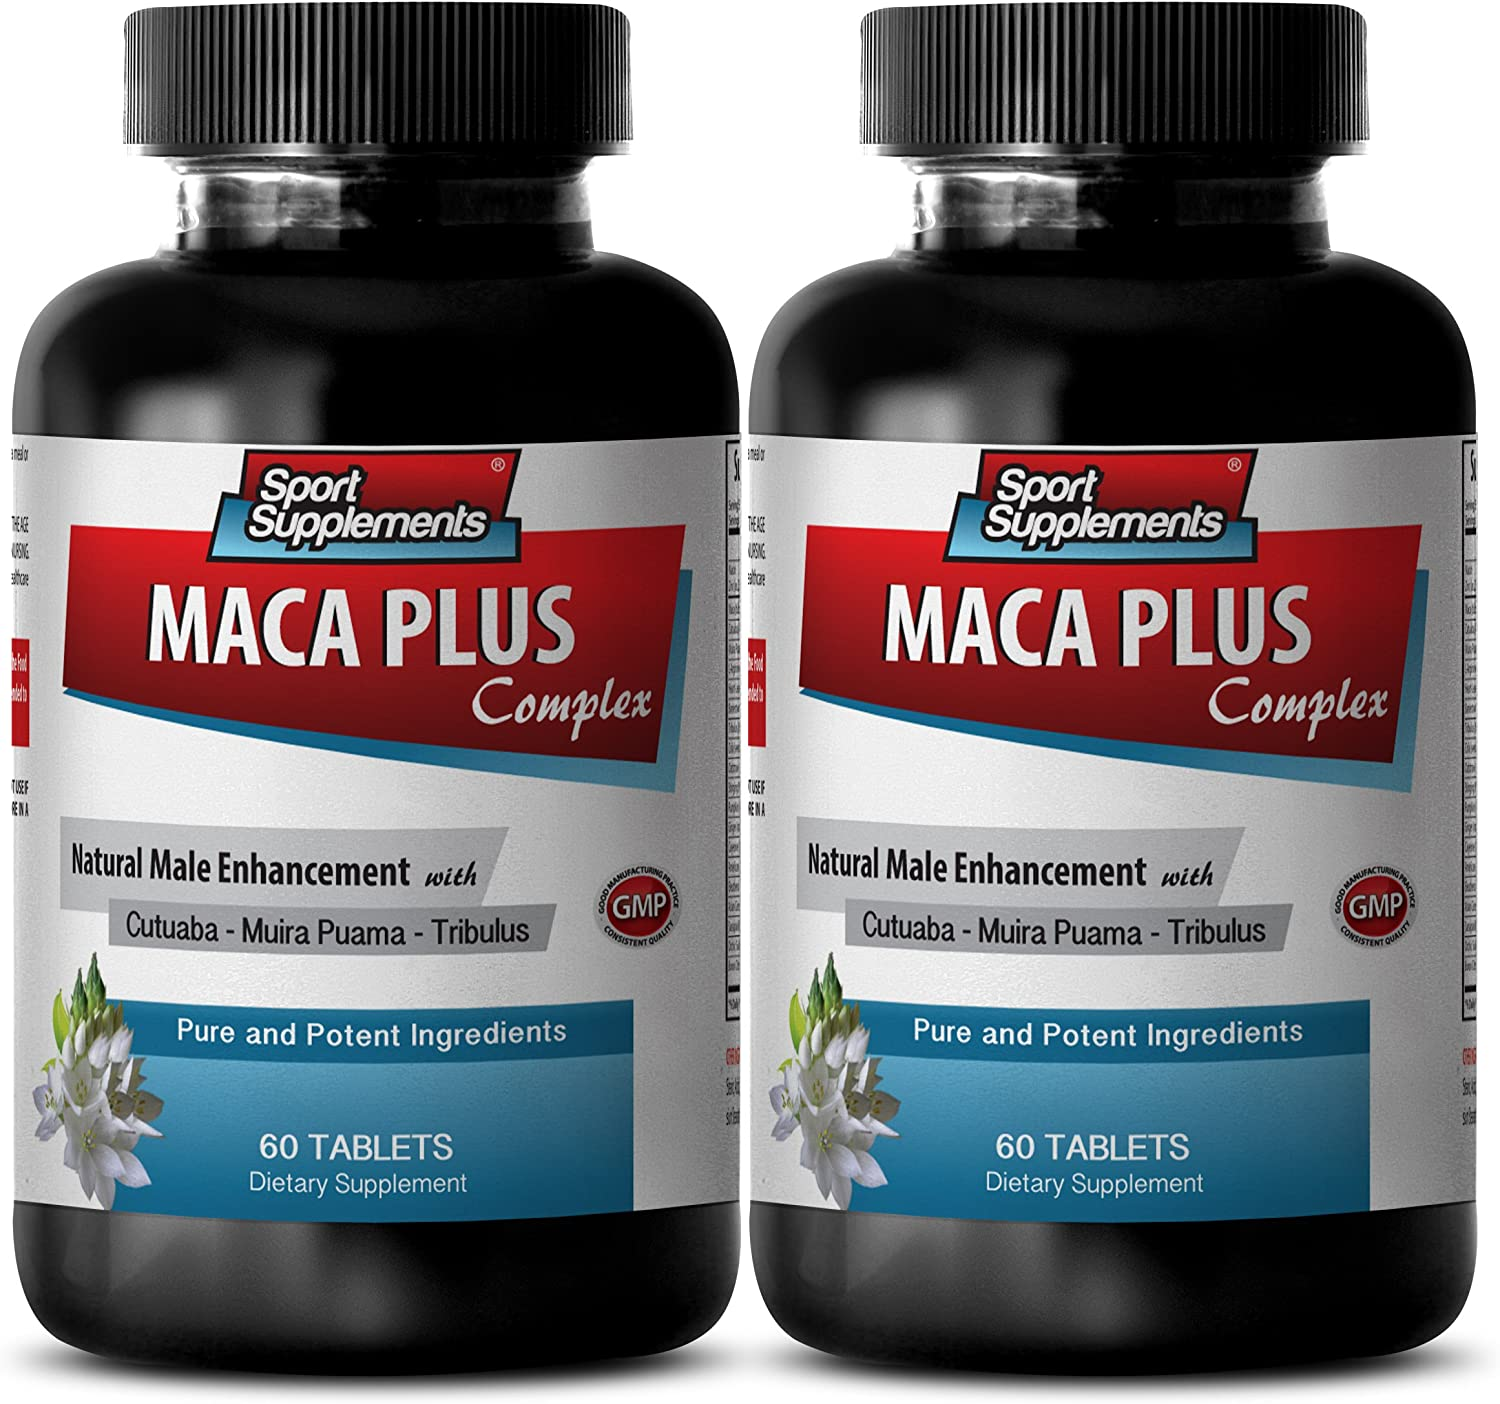 Catuaba and Muira puama - Maca Plus Complex - Promotes Healthy (2 Bottles - 120 Tablets): Health & Personal Care